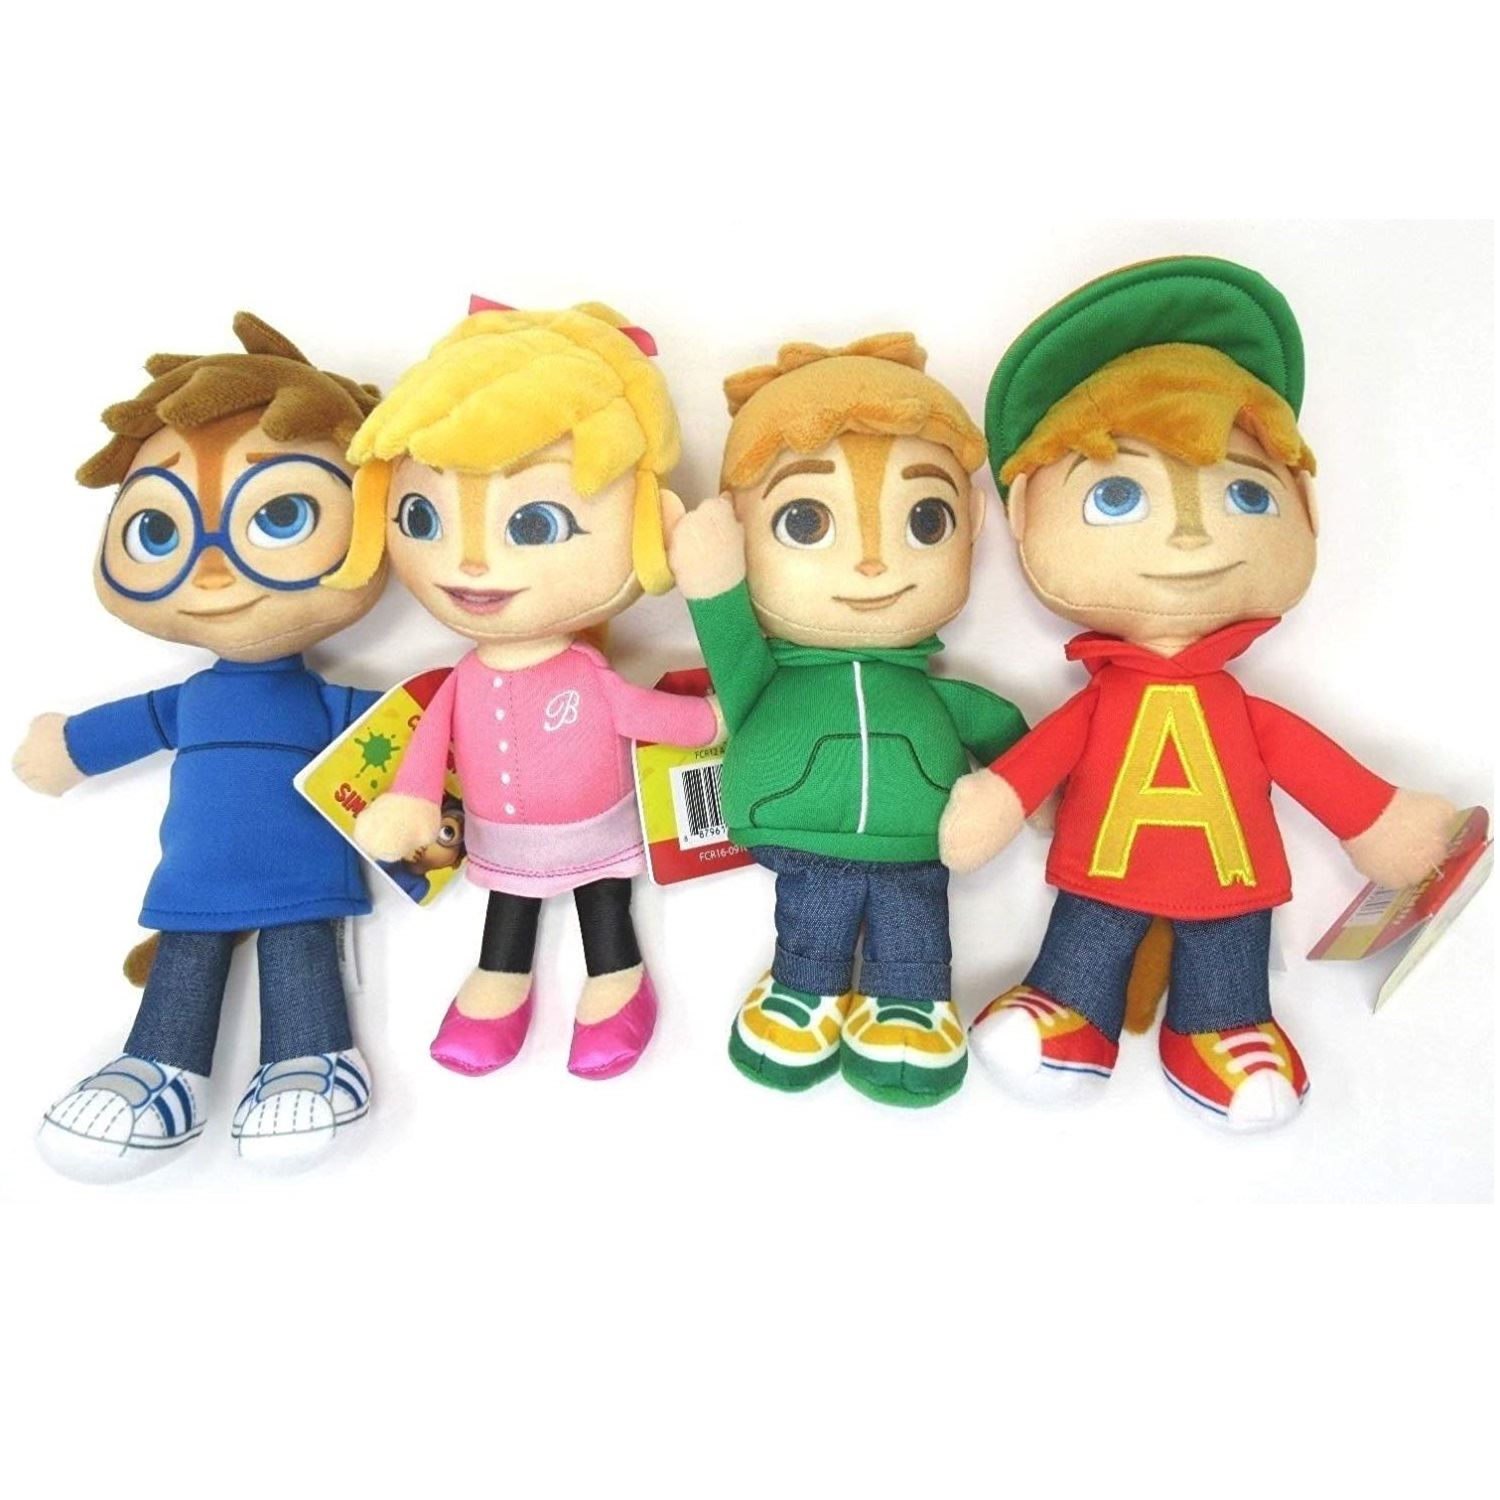 Alvin And The Chipmunks Alvin And Brittany details about authentic fisher price alvin and the chipmunks 4 plushes  theodore simon brittany